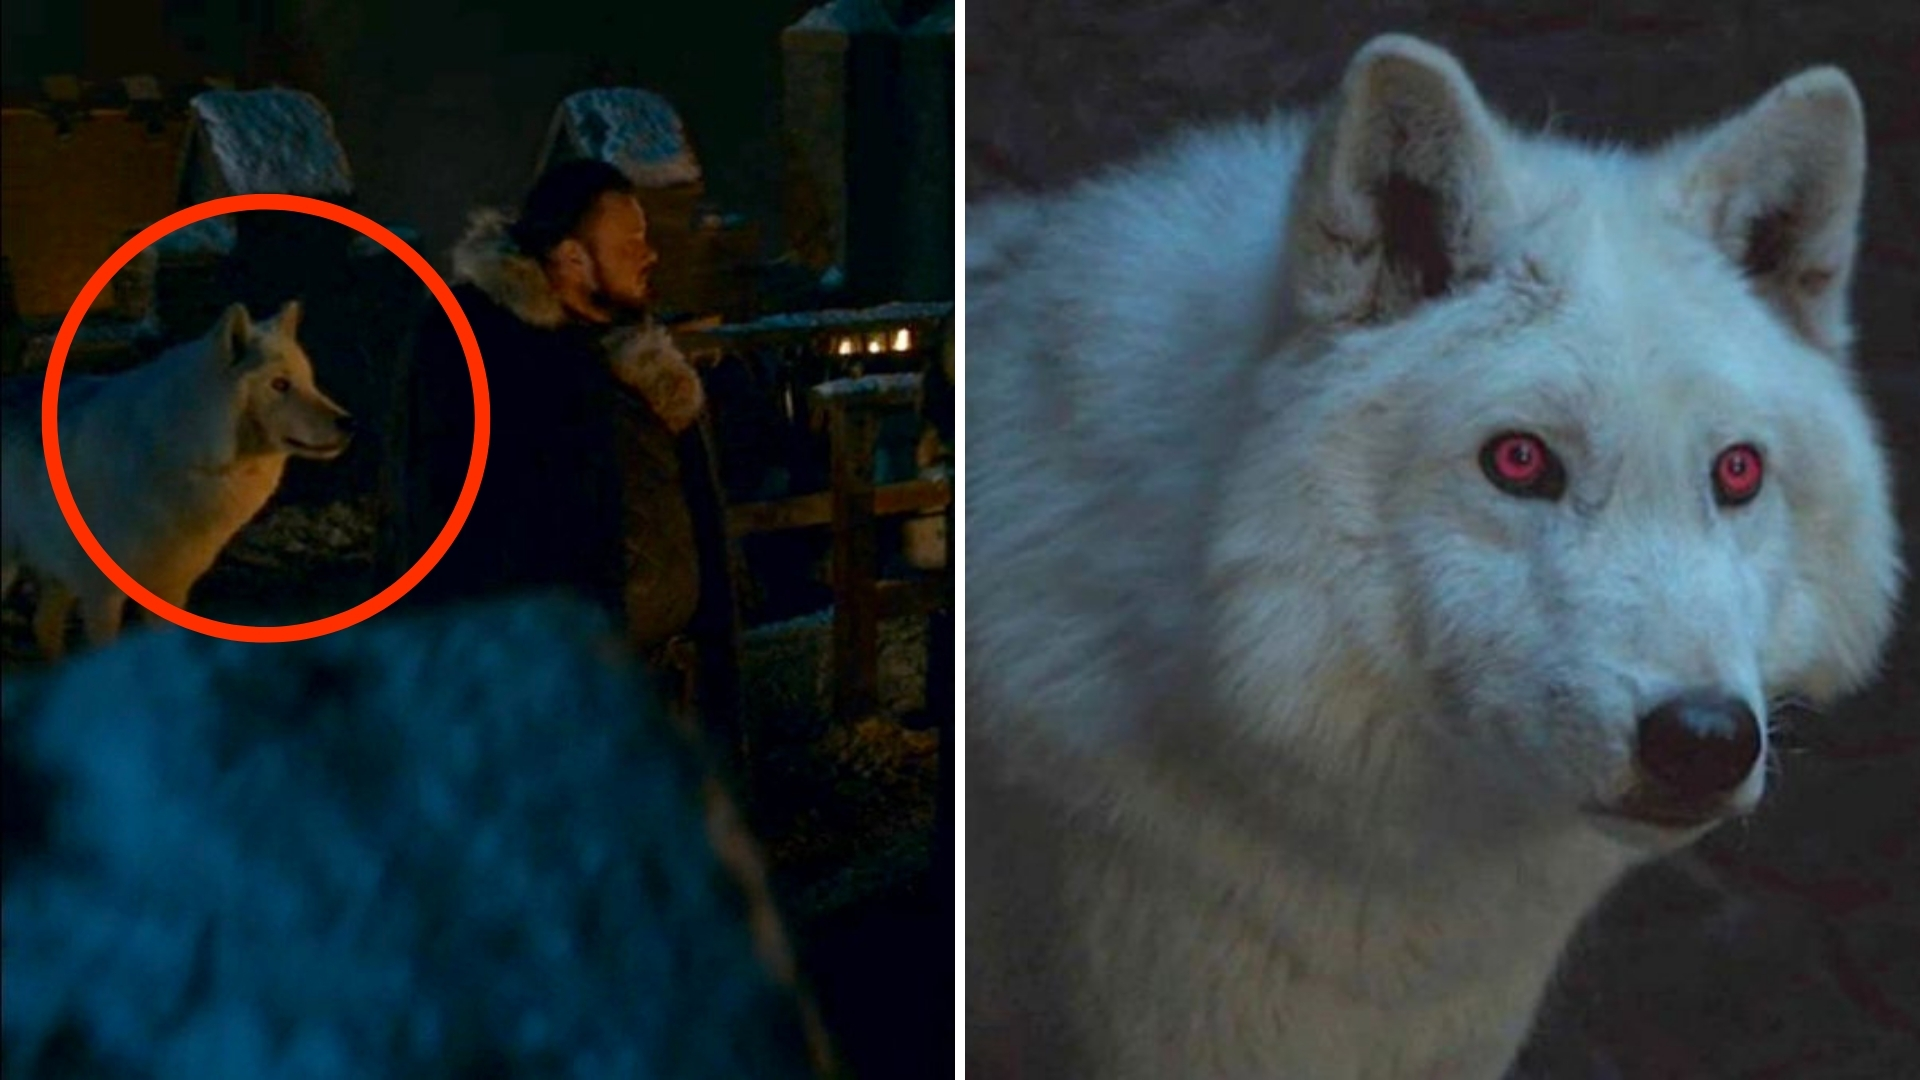 Game of Thrones Finally Gave us a Scene With Ghost. Well, Kind of